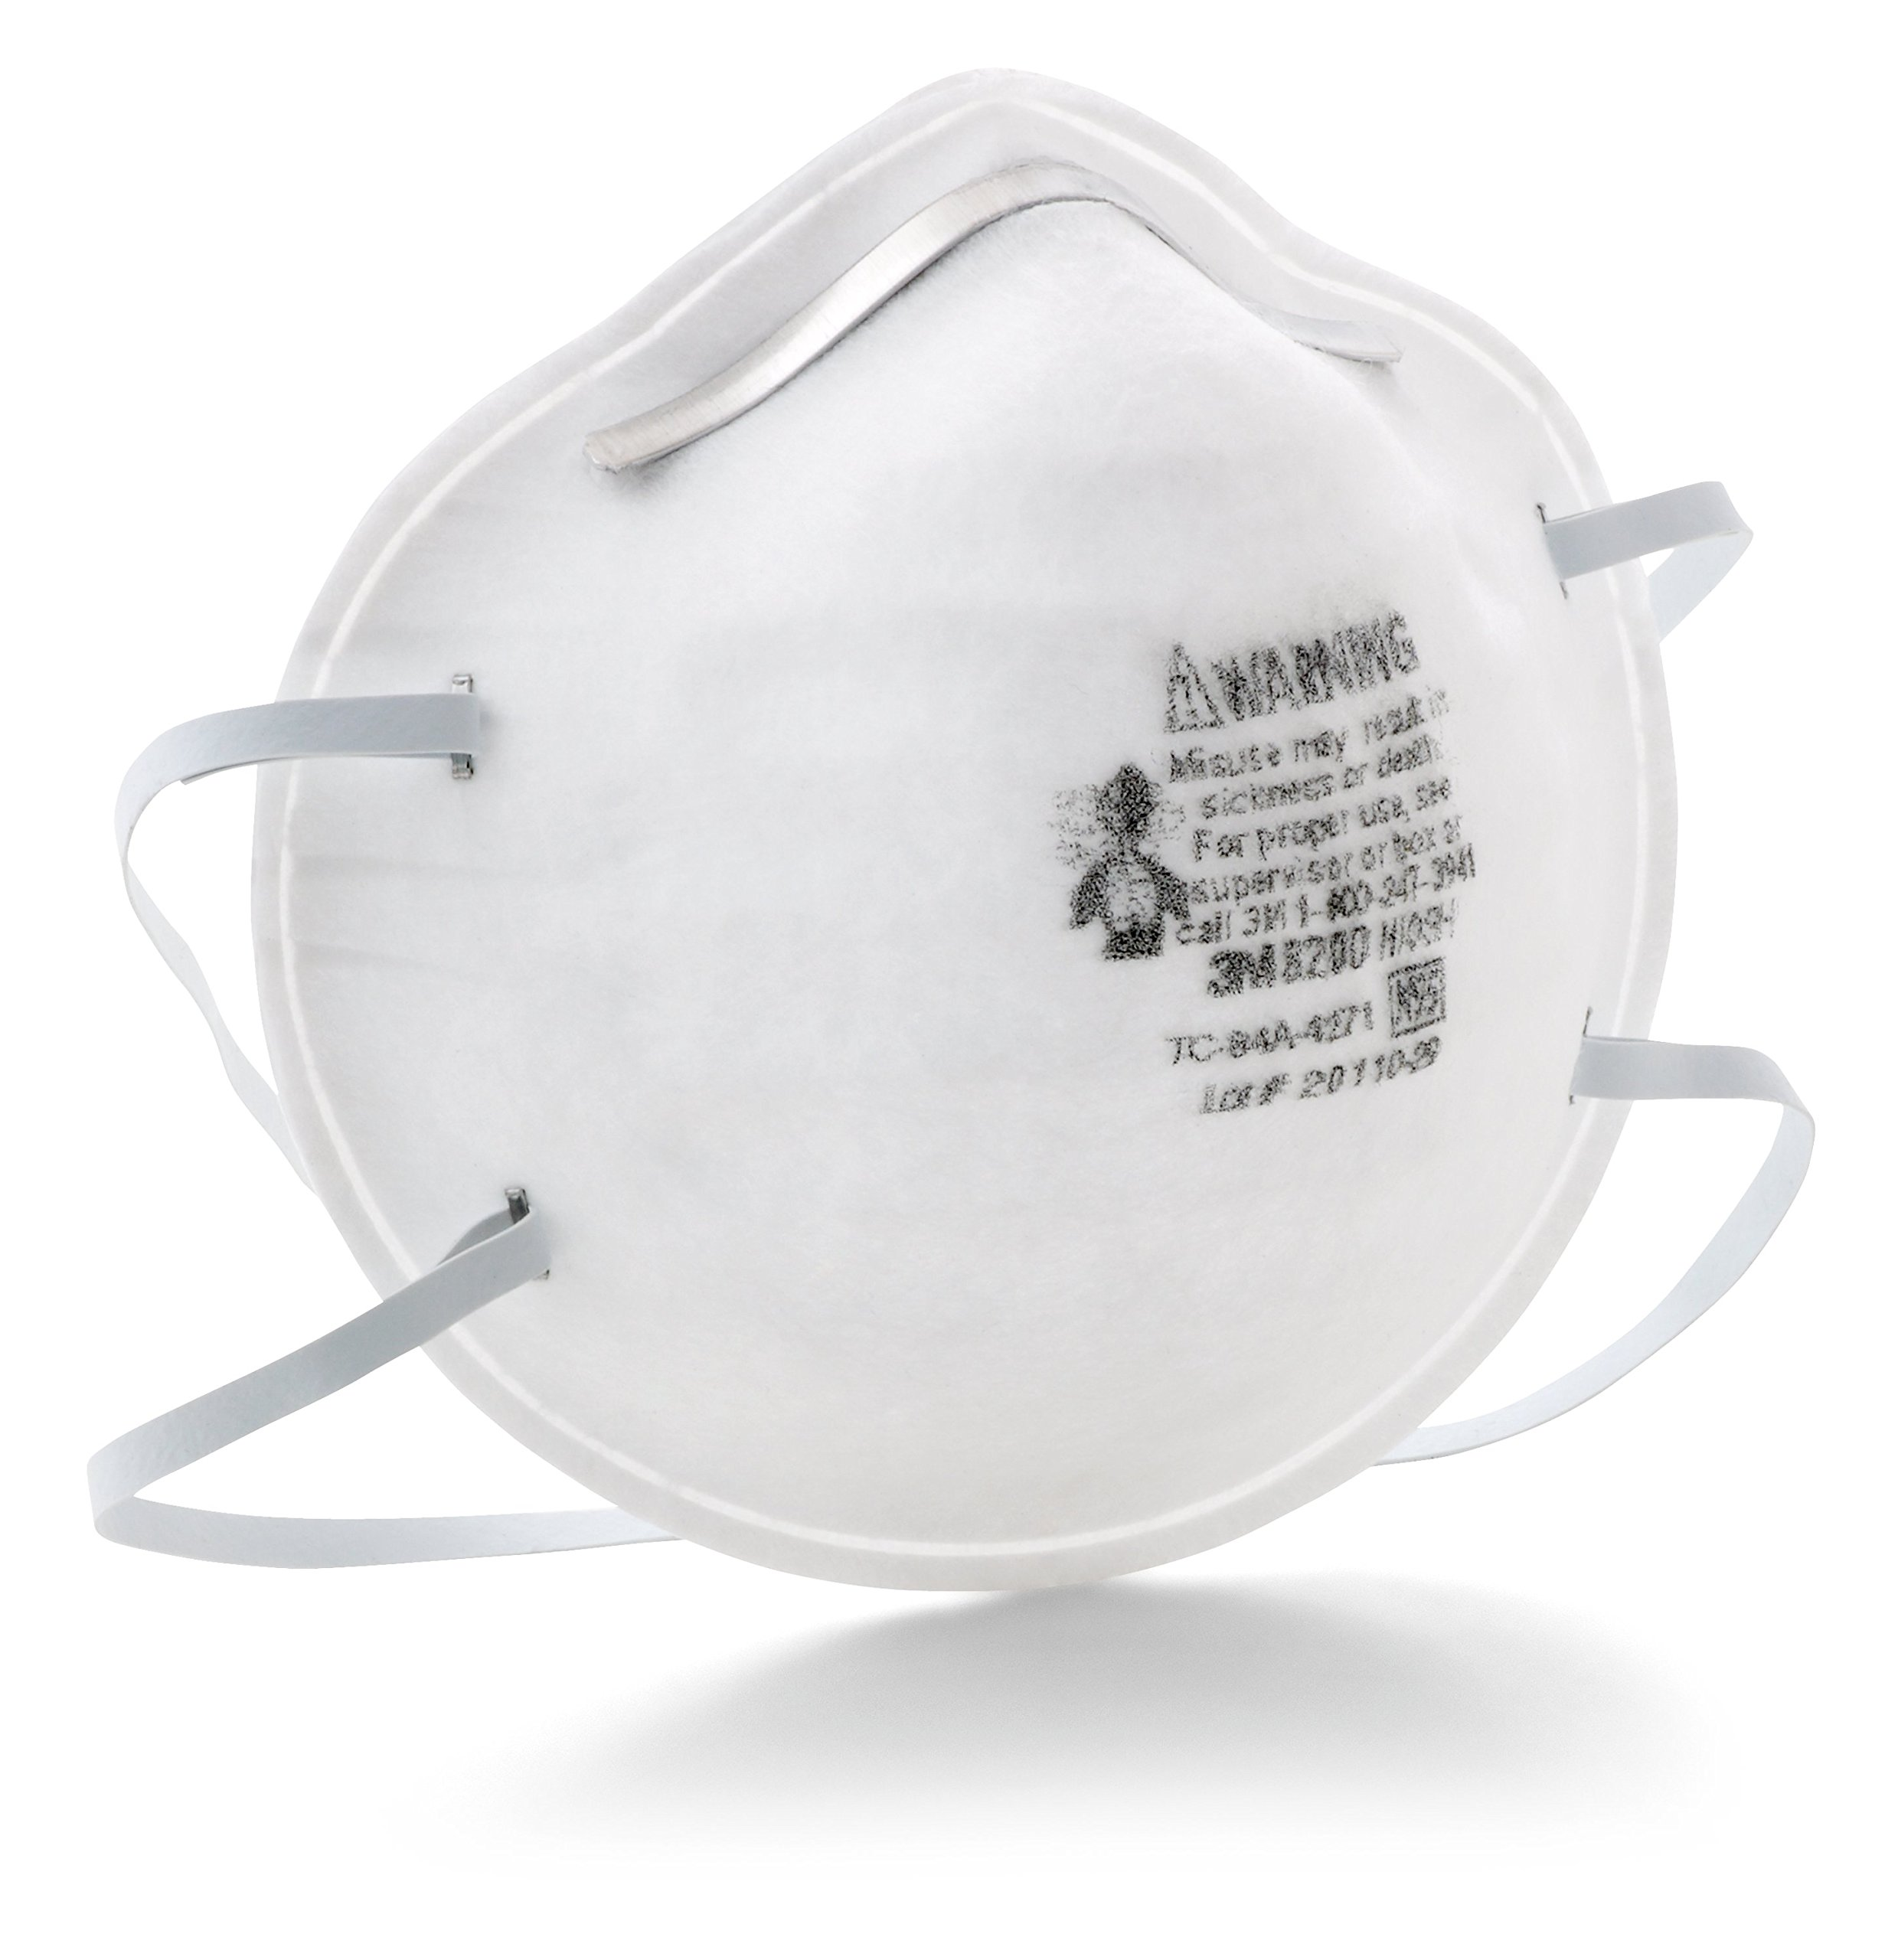 3M 8200 Particulate Respirators, 20-Pack